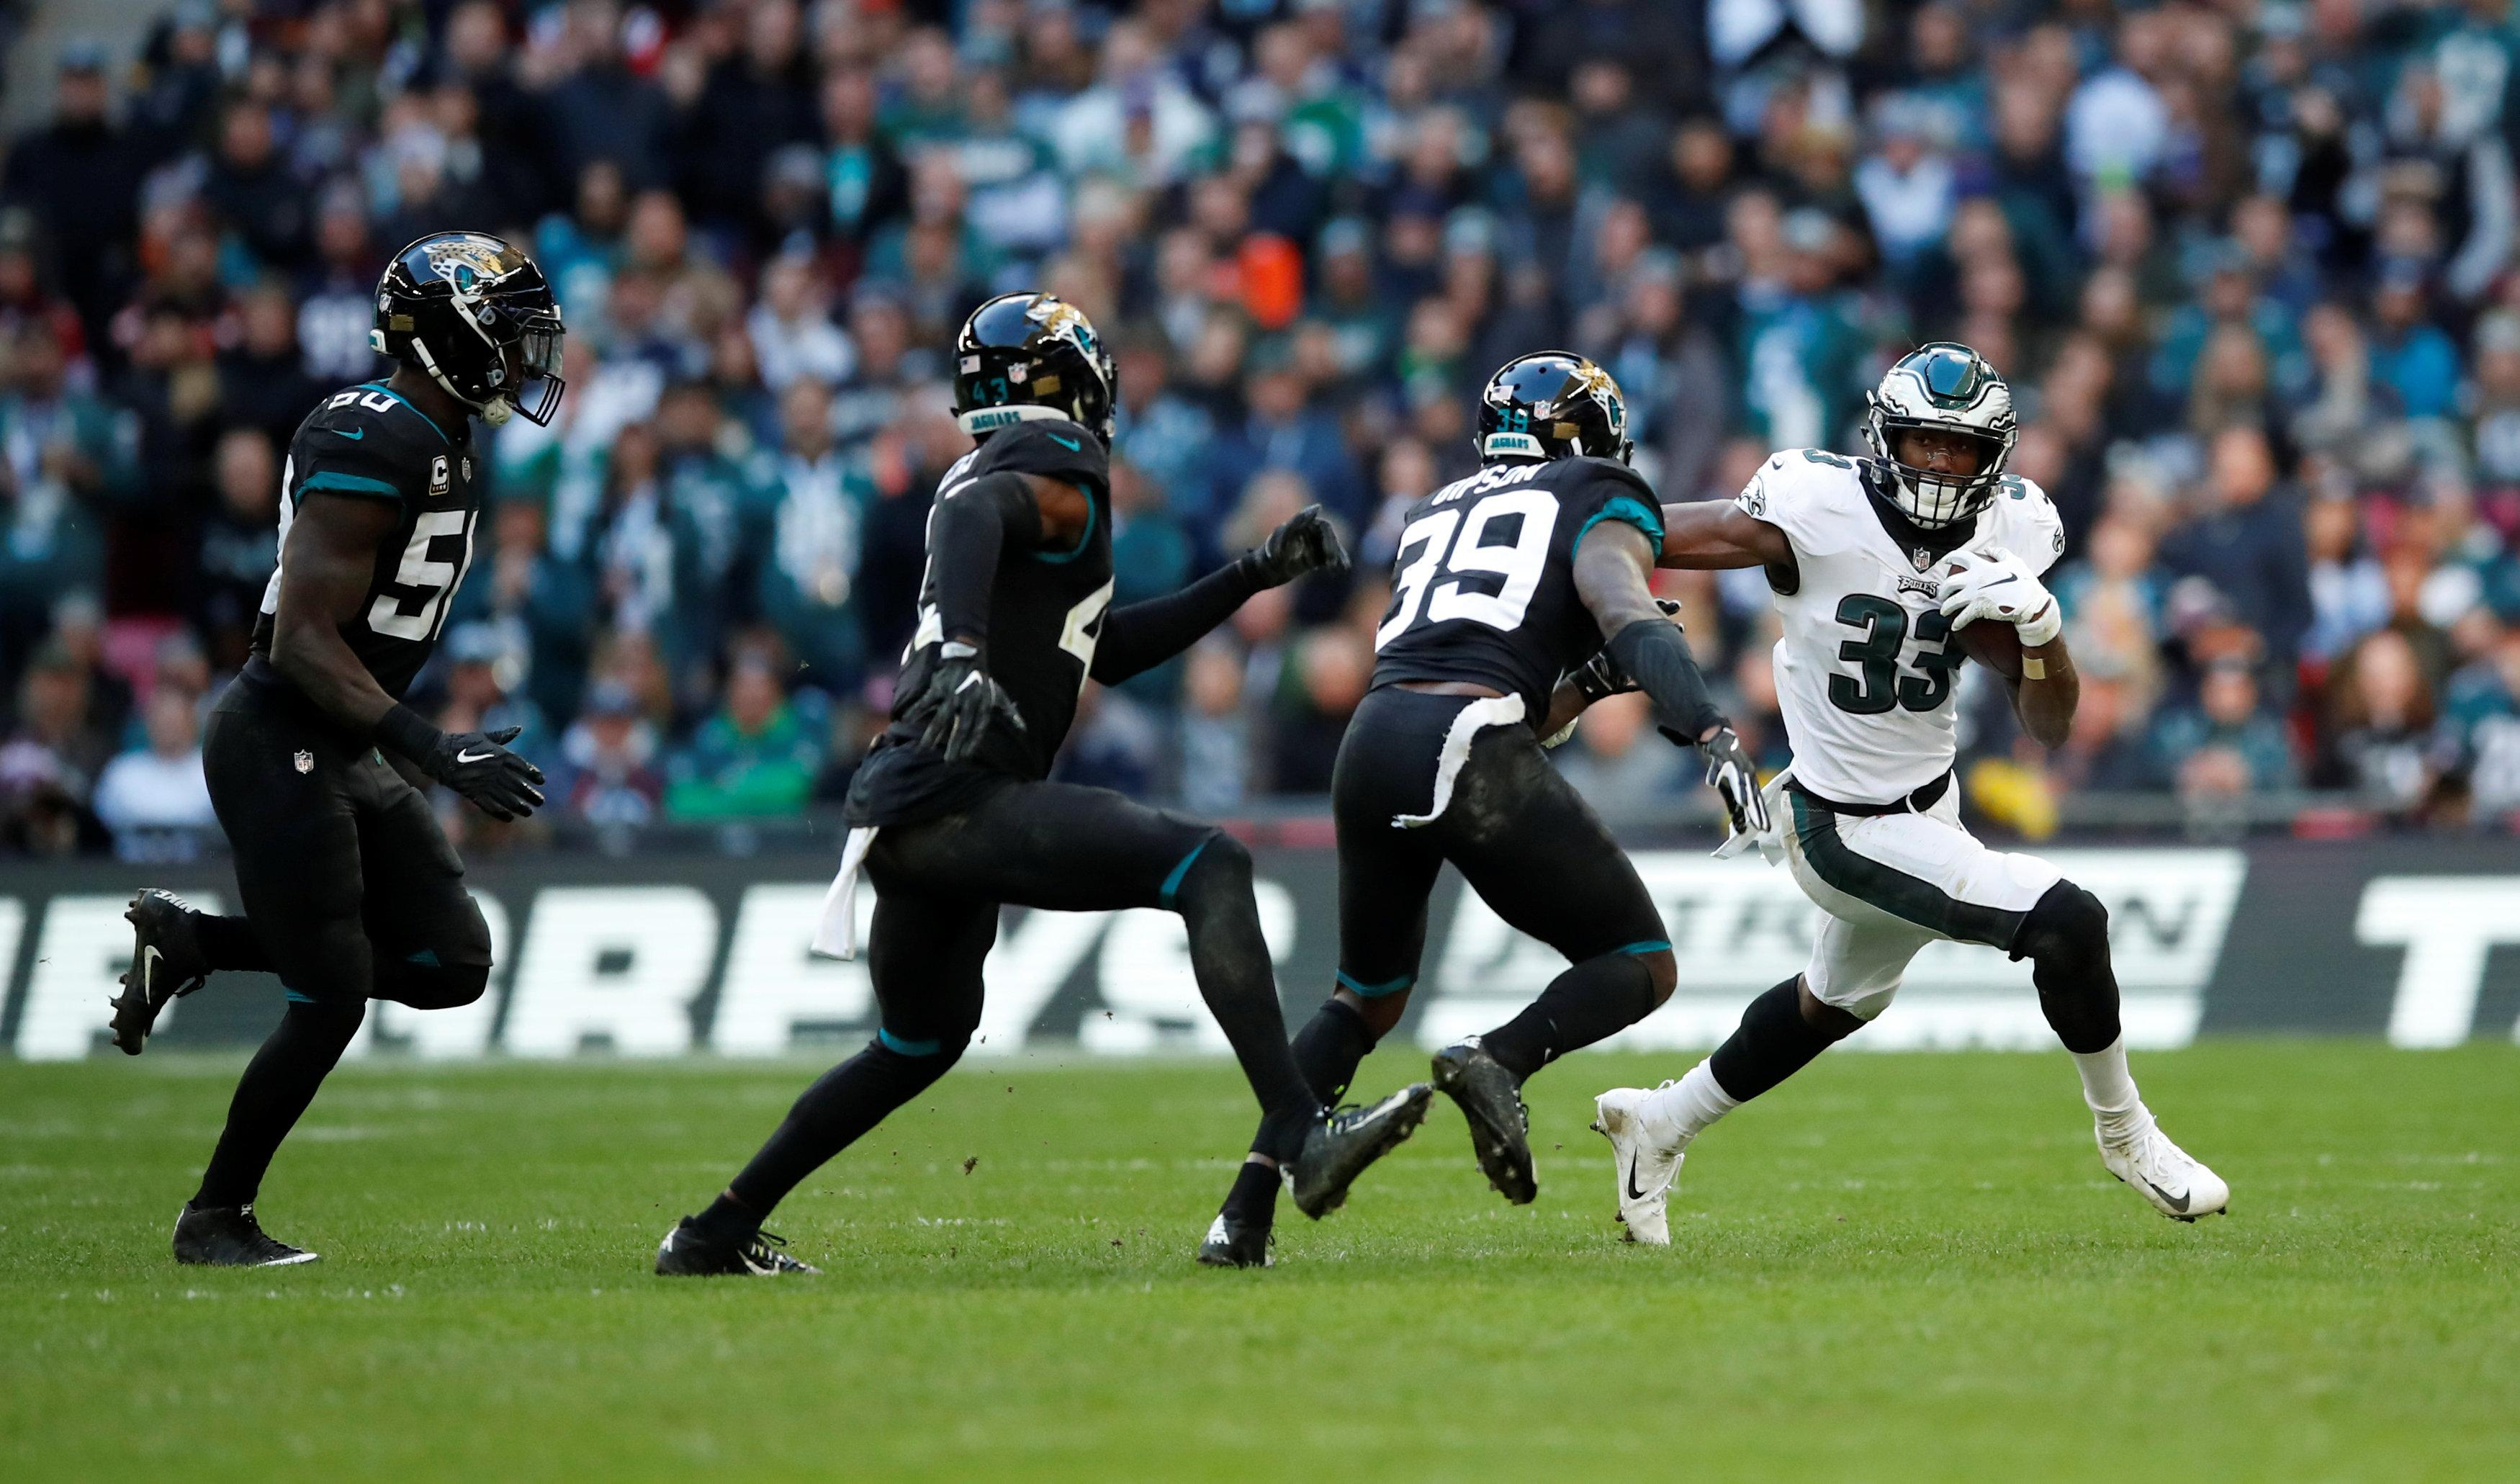 The Jaguars are now in a bit of trouble with a season record of 3-5